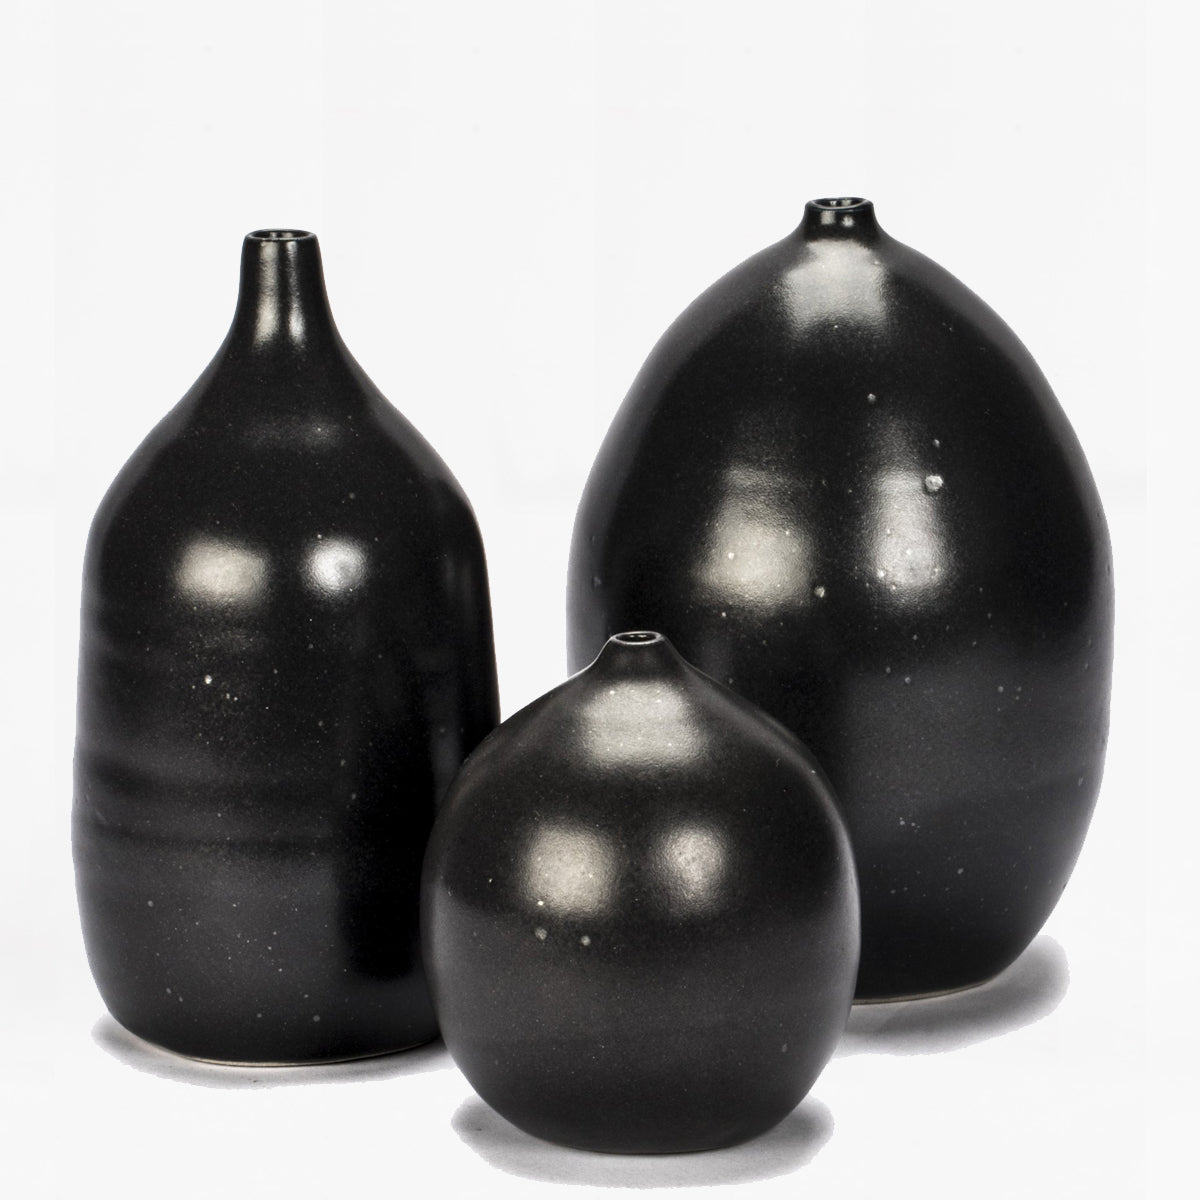 pucker vase, black